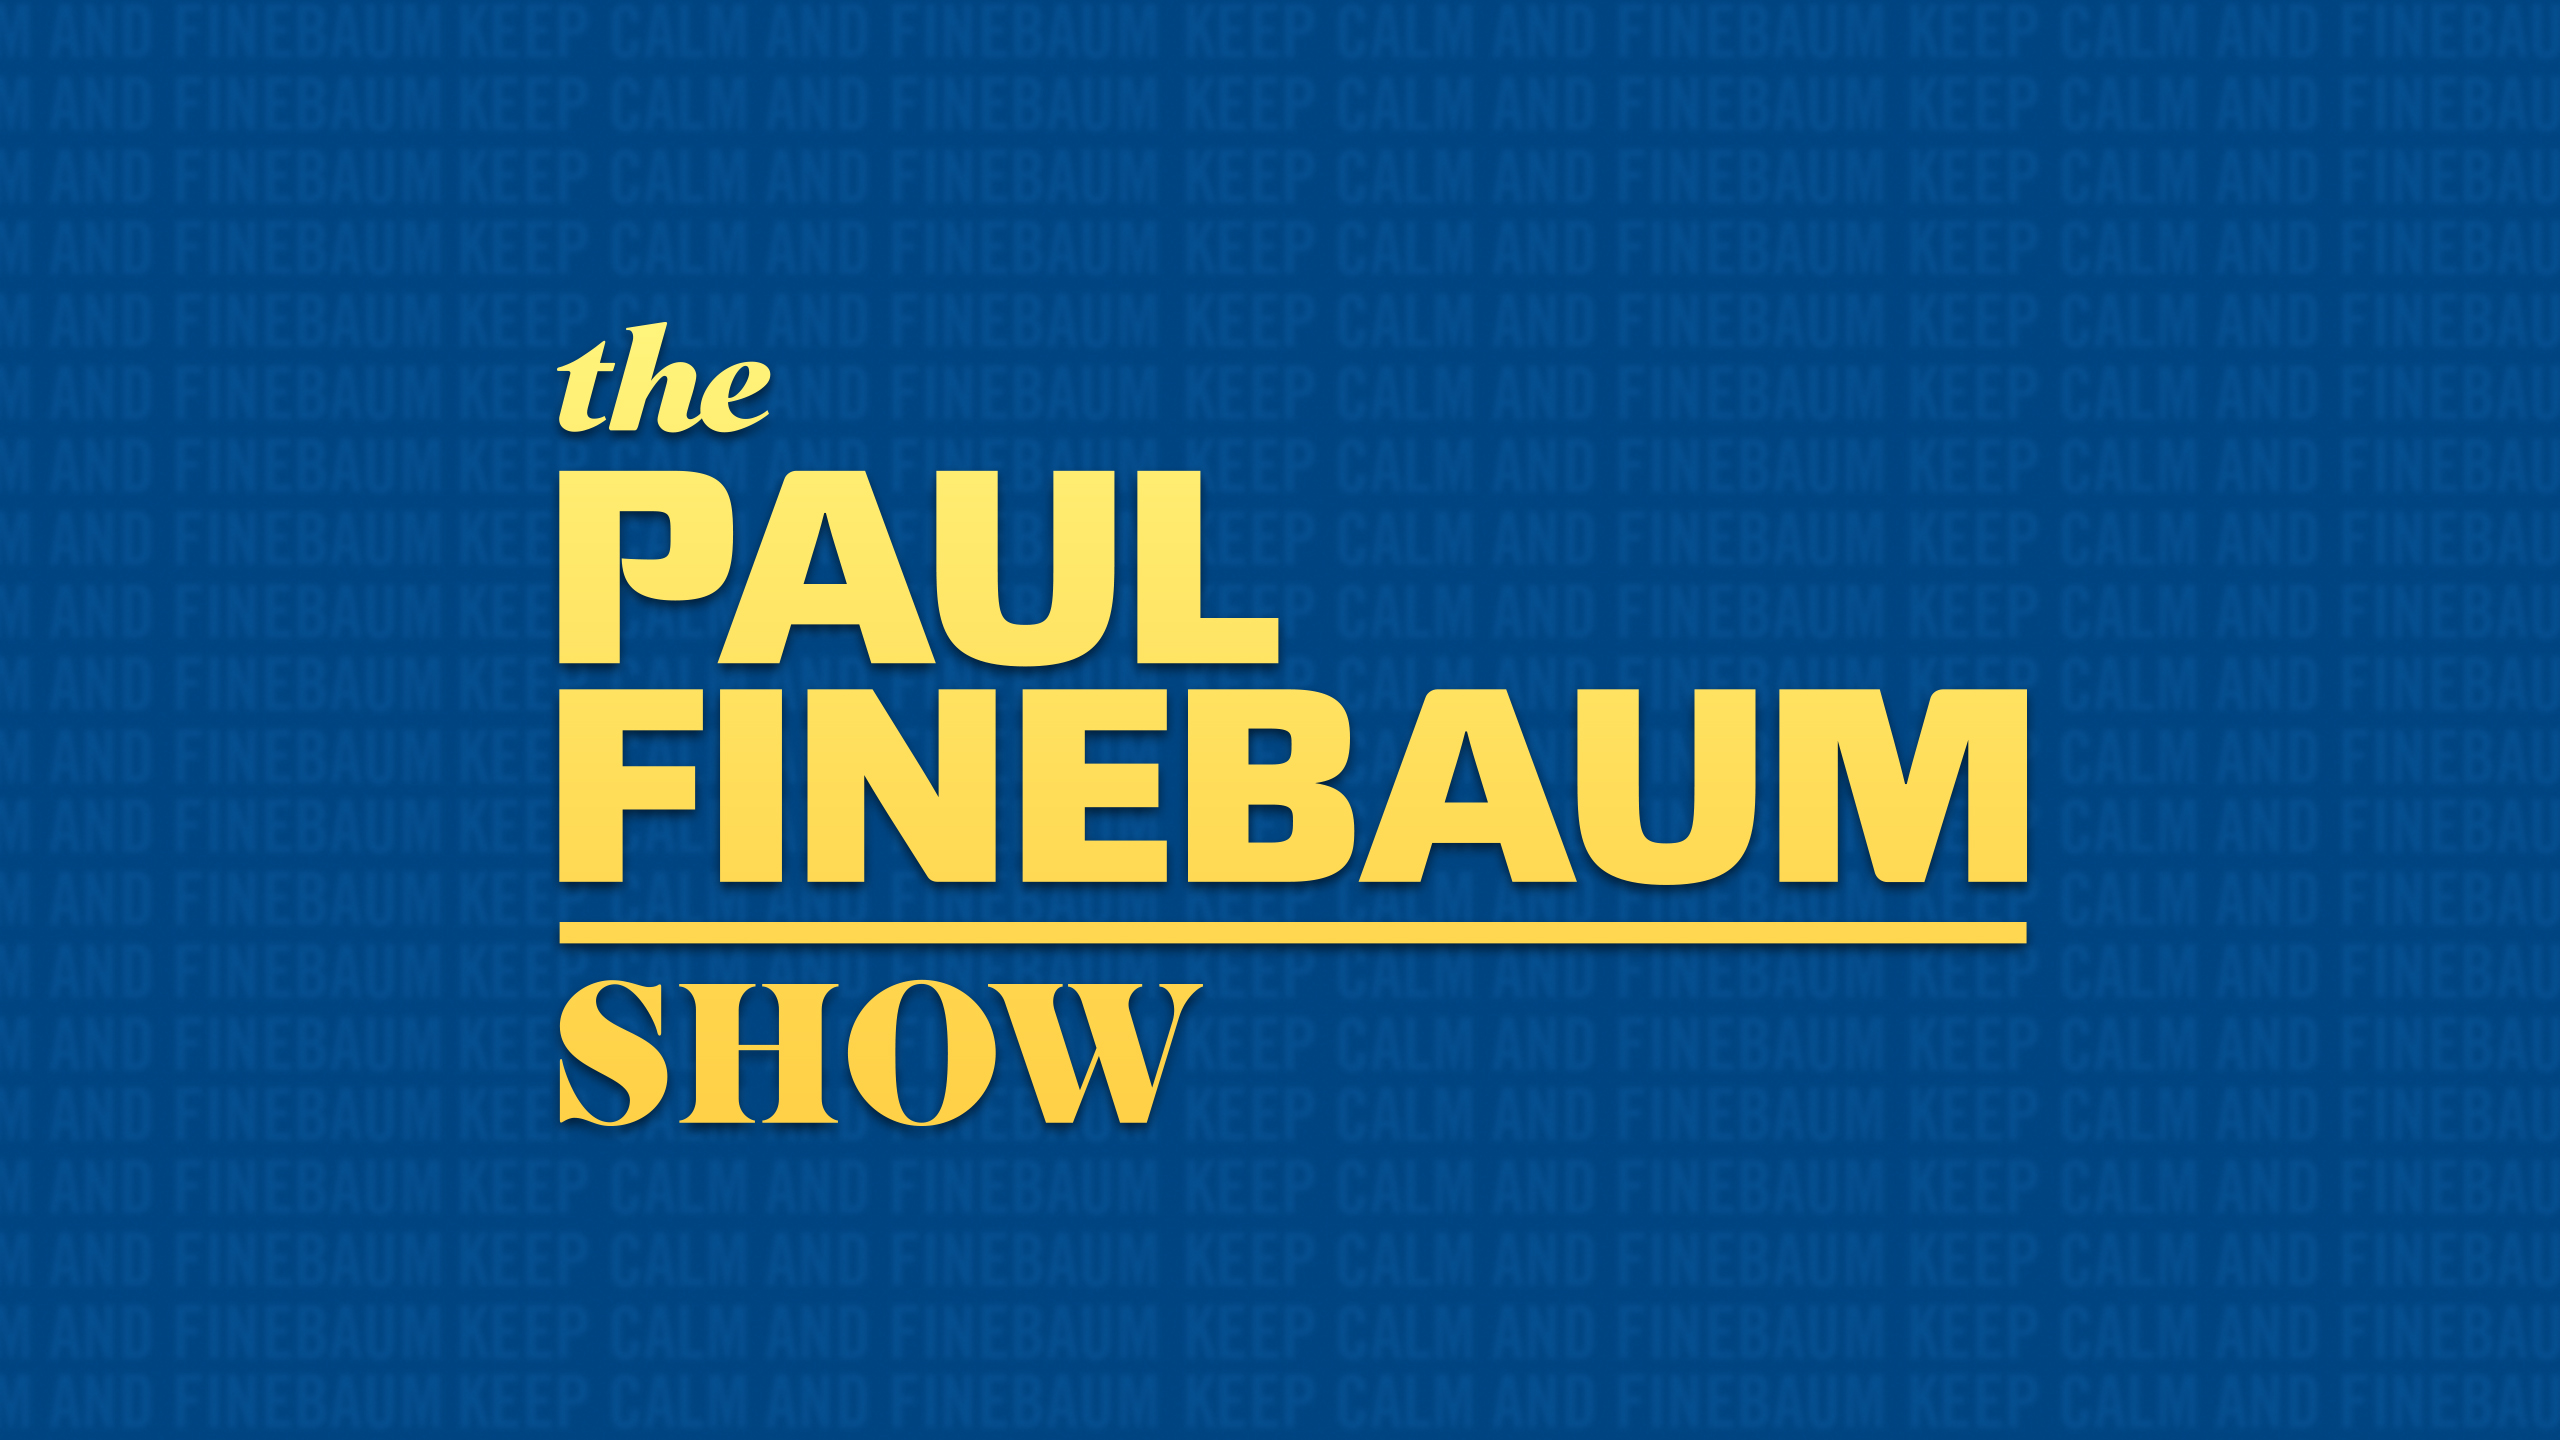 Wed, 12/12 - The Paul Finebaum Show